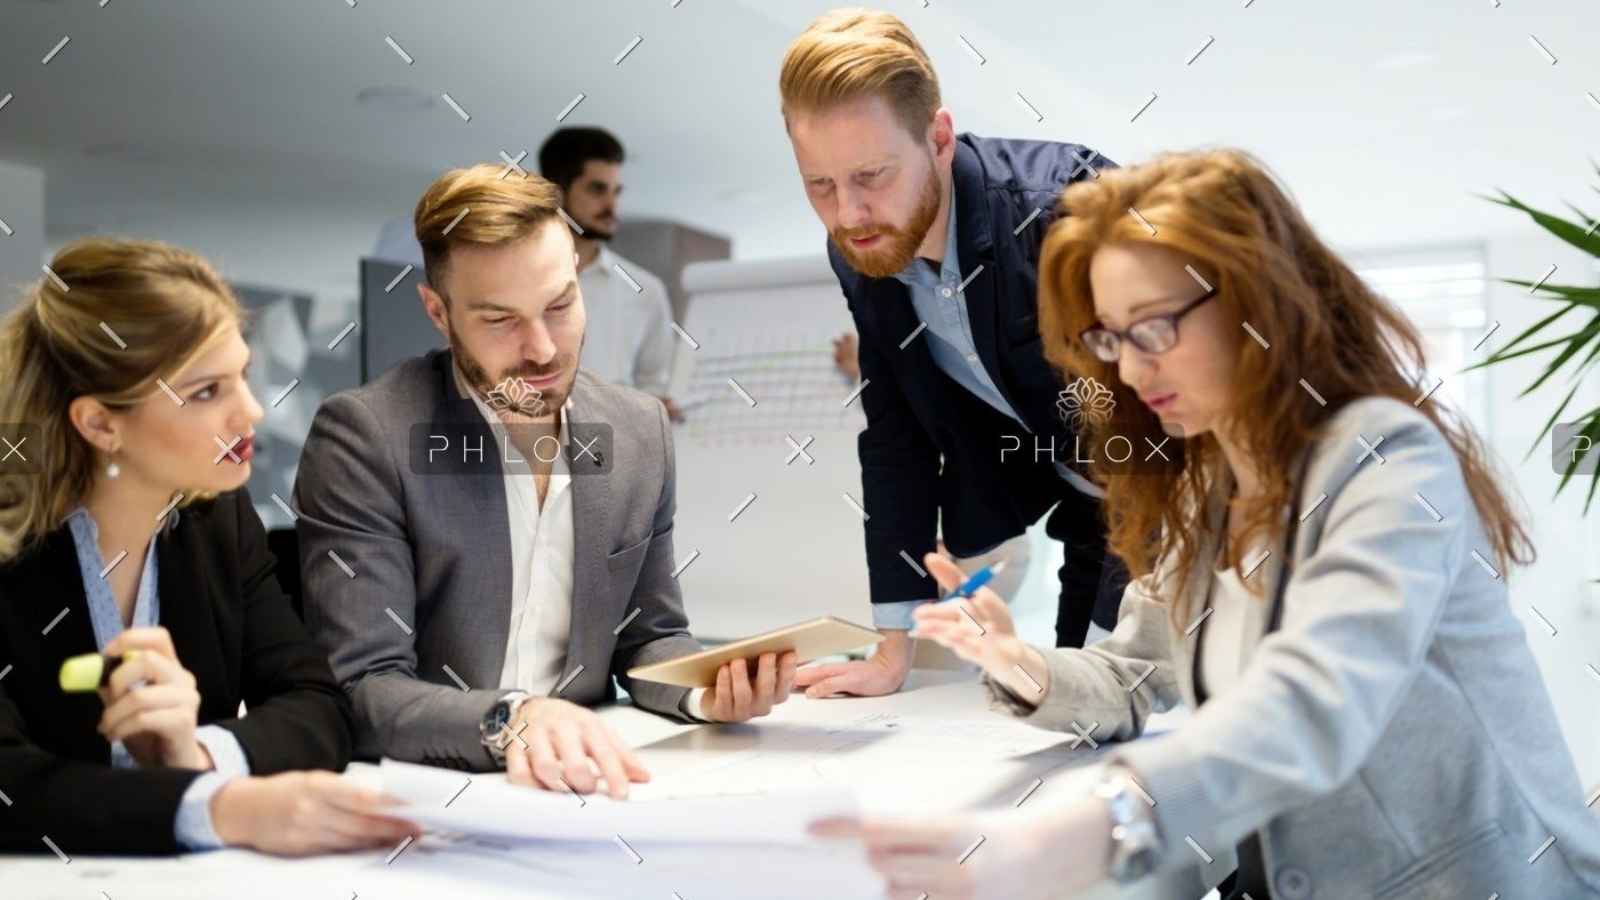 demo-attachment-811-business-people-working-together-on-project-and-B3MZ4TX